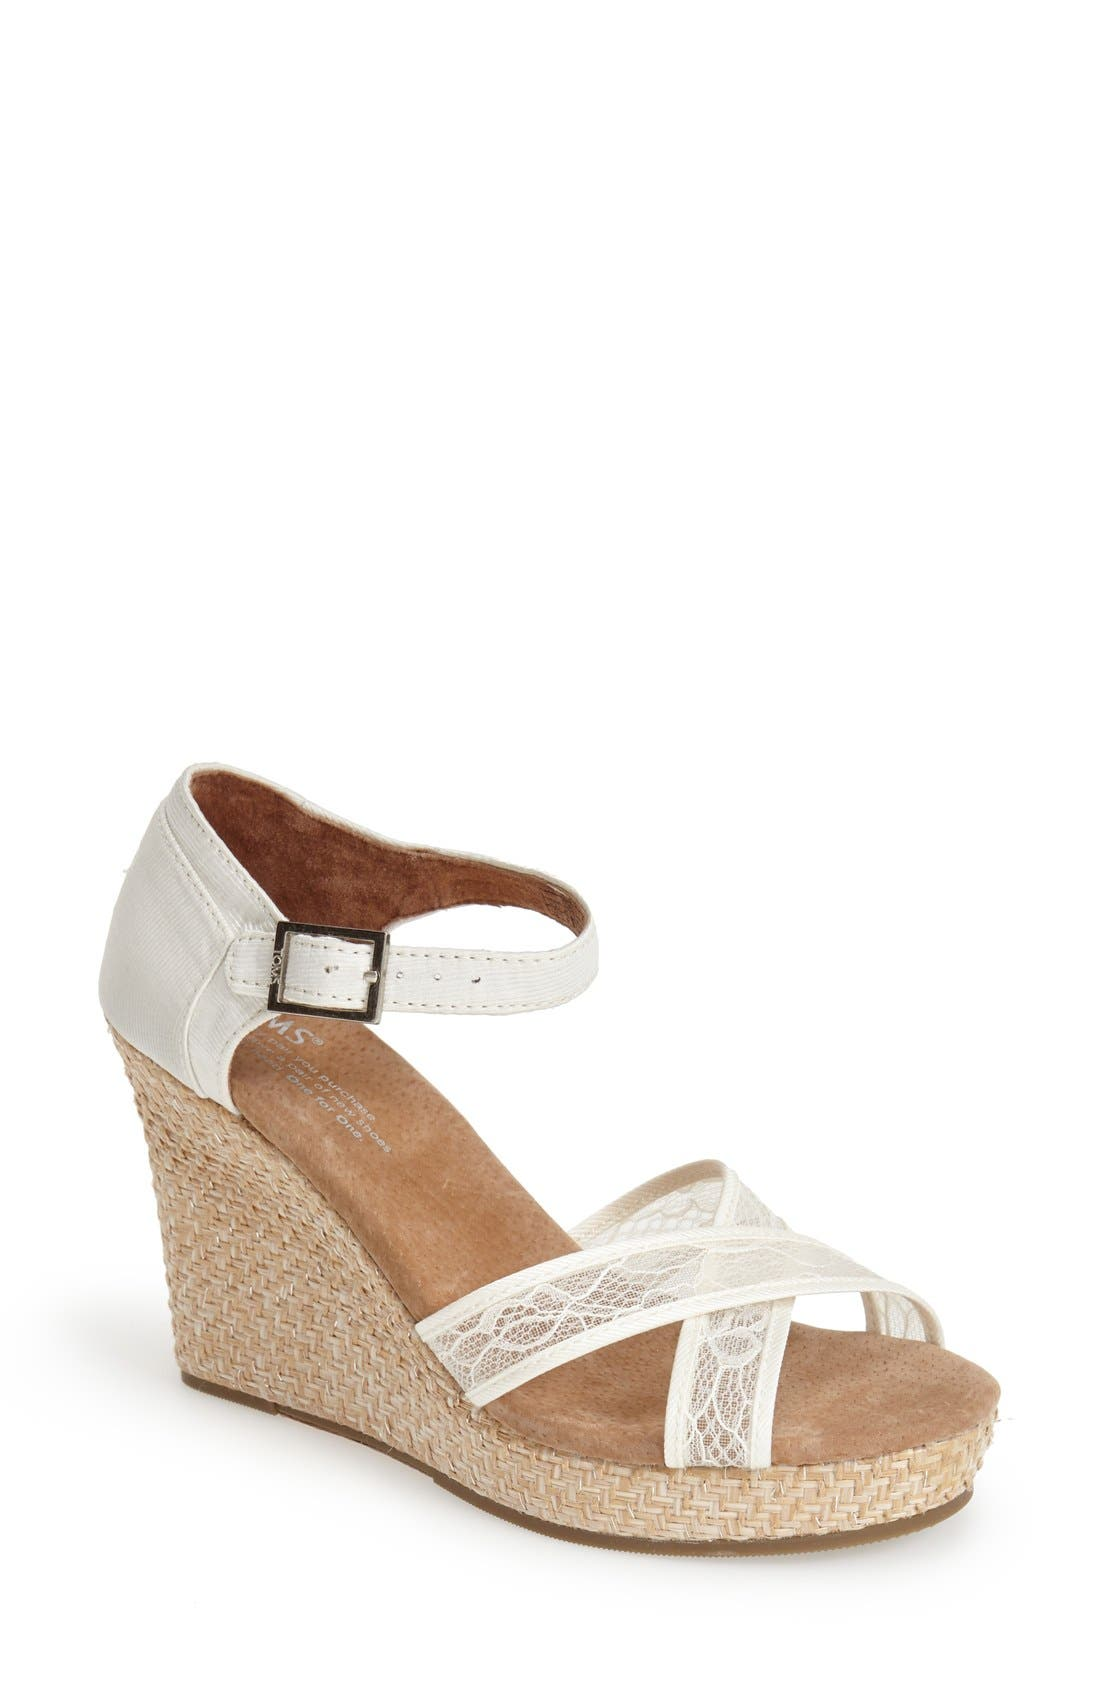 Main Image - TOMS Lace & Grosgrain Ribbon Wedge Wedding Sandal (Women)